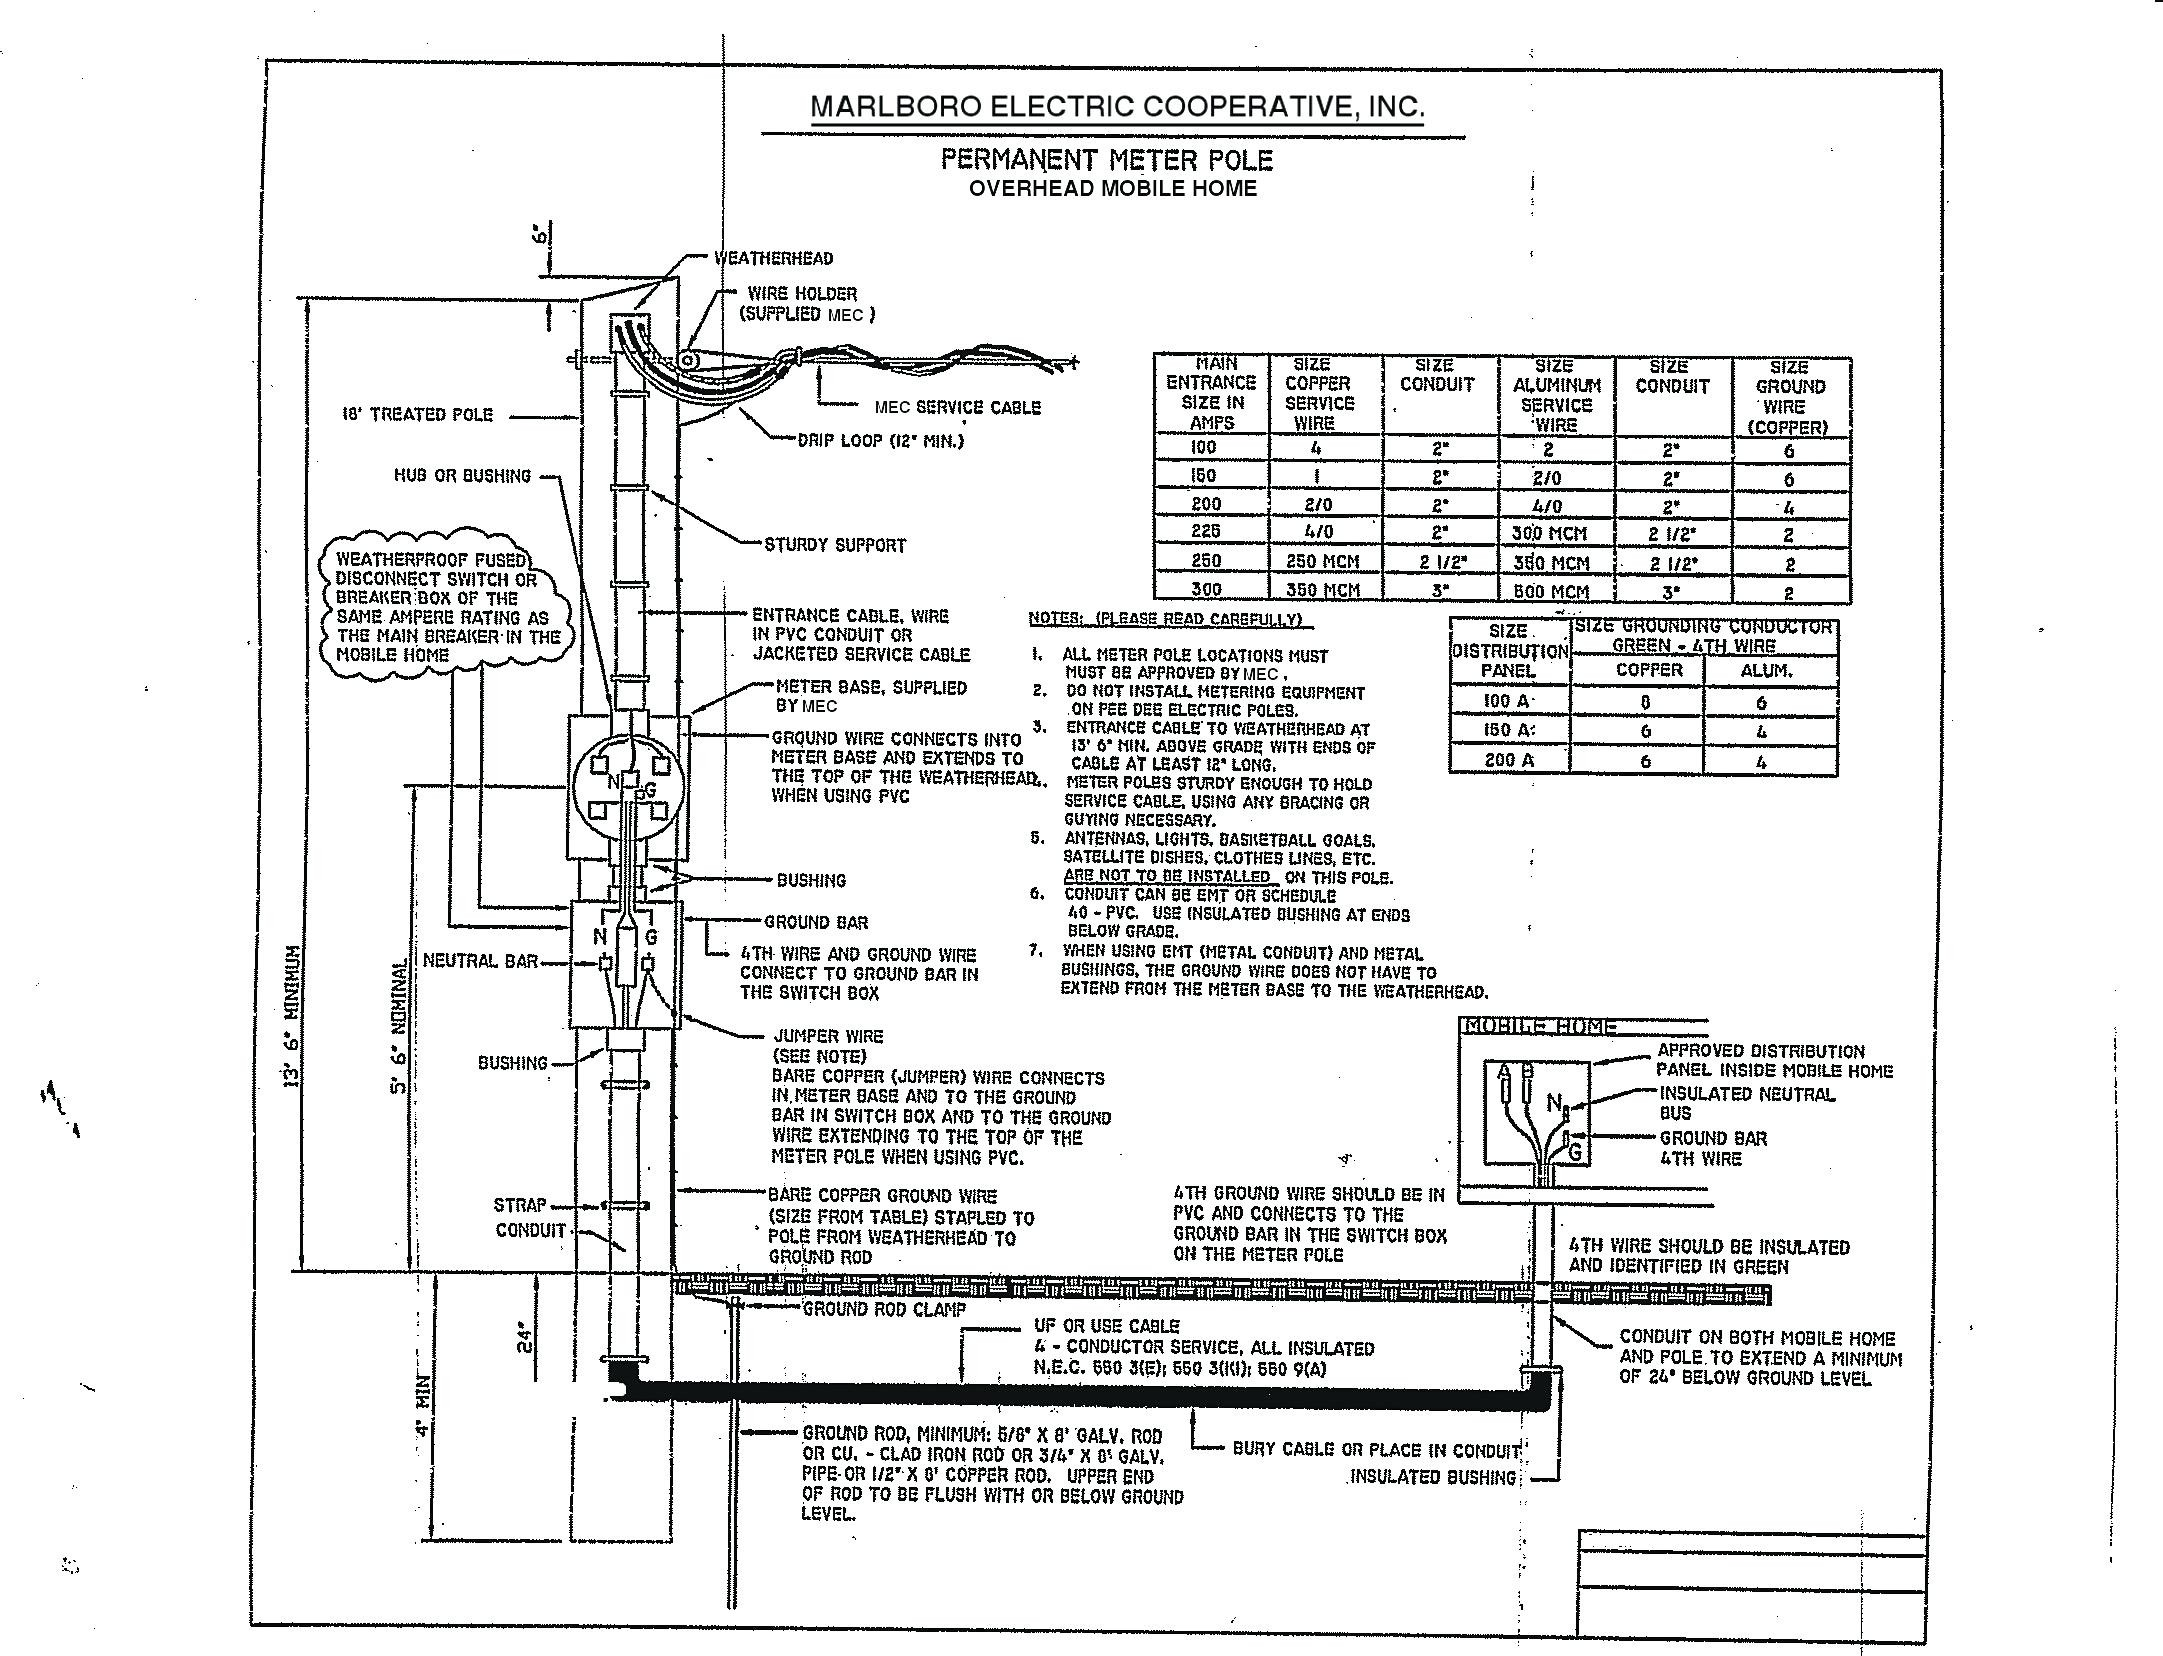 Wiring Diagram For Mobile Home - Wiring Diagram Directory on electric house windows, distribution board, electric house heater, earthing system, electric house breakers, electric power distribution, electric motor, extension cord, power cord, junction box, national electrical code, electric water pumps, alternating current, electric house fans, electric house plug, electrical engineering, electric house tools, electric house lighting, knob-and-tube wiring, three-phase electric power, electric house switches, electric house service, ground and neutral, circuit breaker, power cable, electrical conduit, electric house parts, wiring diagram,